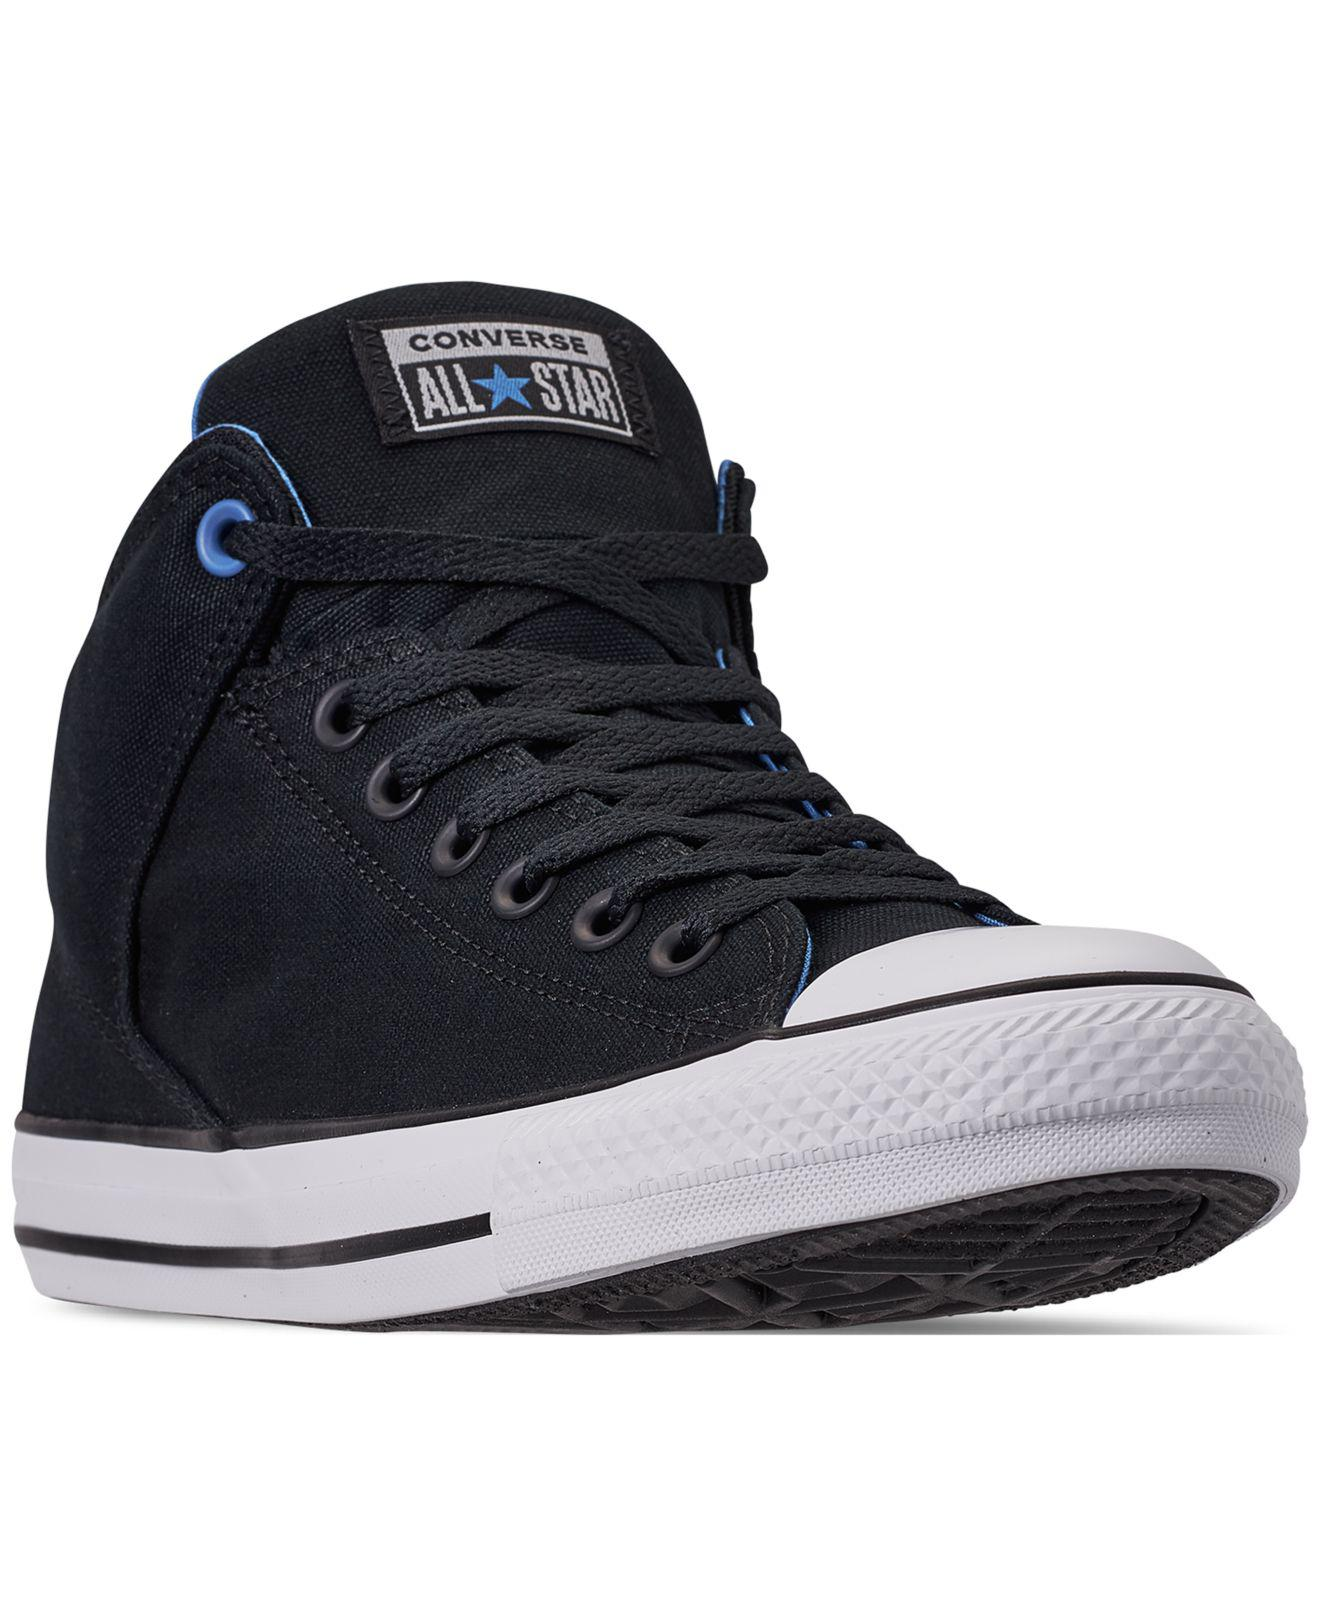 26cbb36f5ecd Converse - Black Chuck Taylor All Star High Street Casual Sneakers From  Finish Line for Men. View fullscreen